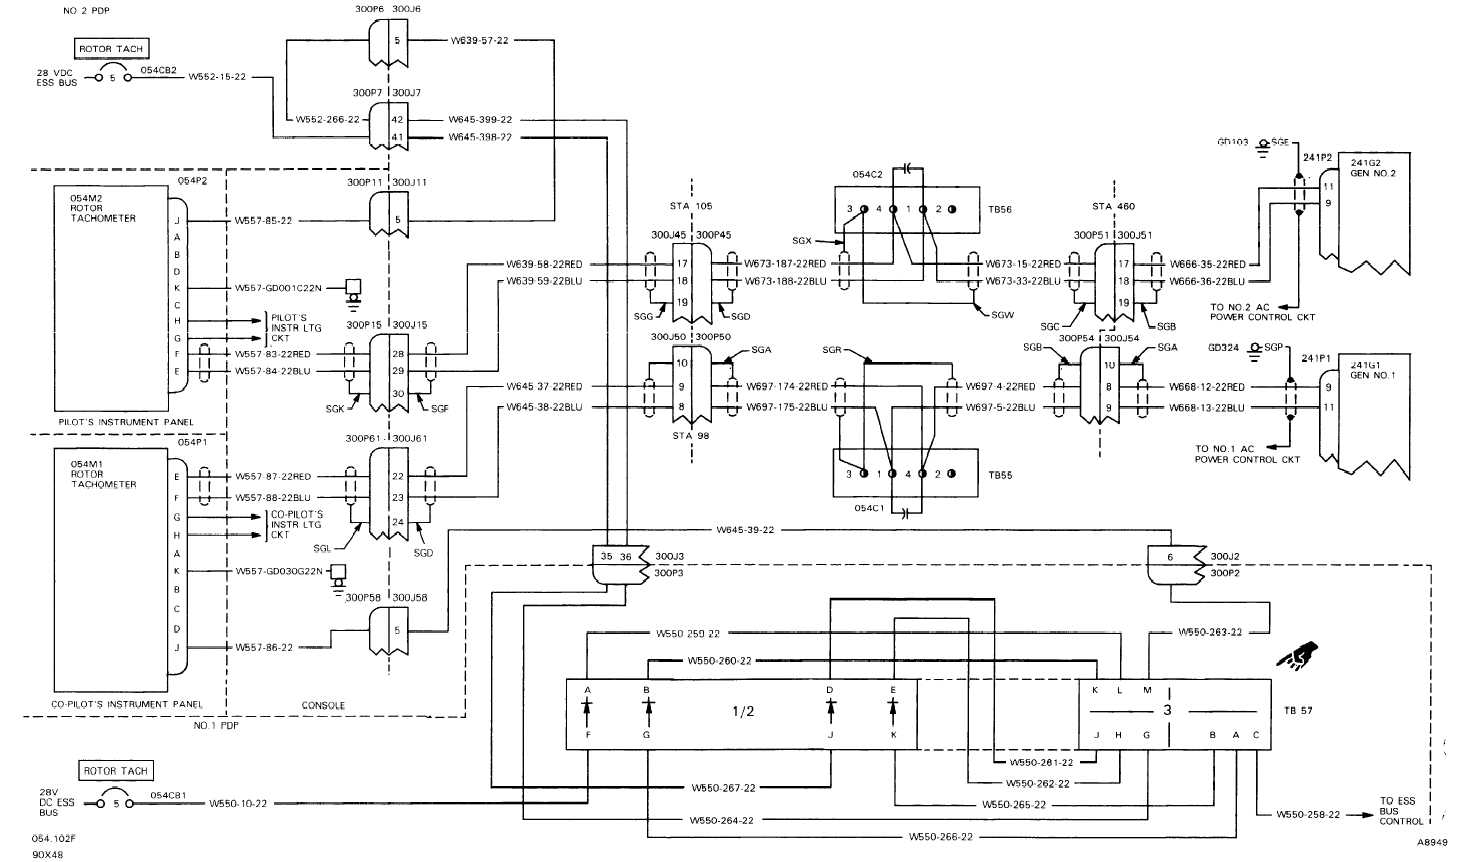 TM-55-1520-240-T-2_442_1 Wiring Diagram For Vdo Tachometer Gauge on circuit diagram, hour meter wiring diagram, vdo ammeter wiring diagrams, fuel sending unit wiring diagram, rocker switch diagram, pro tach wiring diagram, gauge wiring diagram, amp installation diagram, accel distributor wiring diagram, oil pressure sensor diagram, pro comp light installation diagram, 6 volt system diagram, oil pressure sending unit diagram, hydraulic pump diagram, msd tach wiring diagram, 12 to 6 volt diagram, reverse osmosis hook up diagram, alternator wiring diagram, street rod wiring diagram, speedometer diagram,